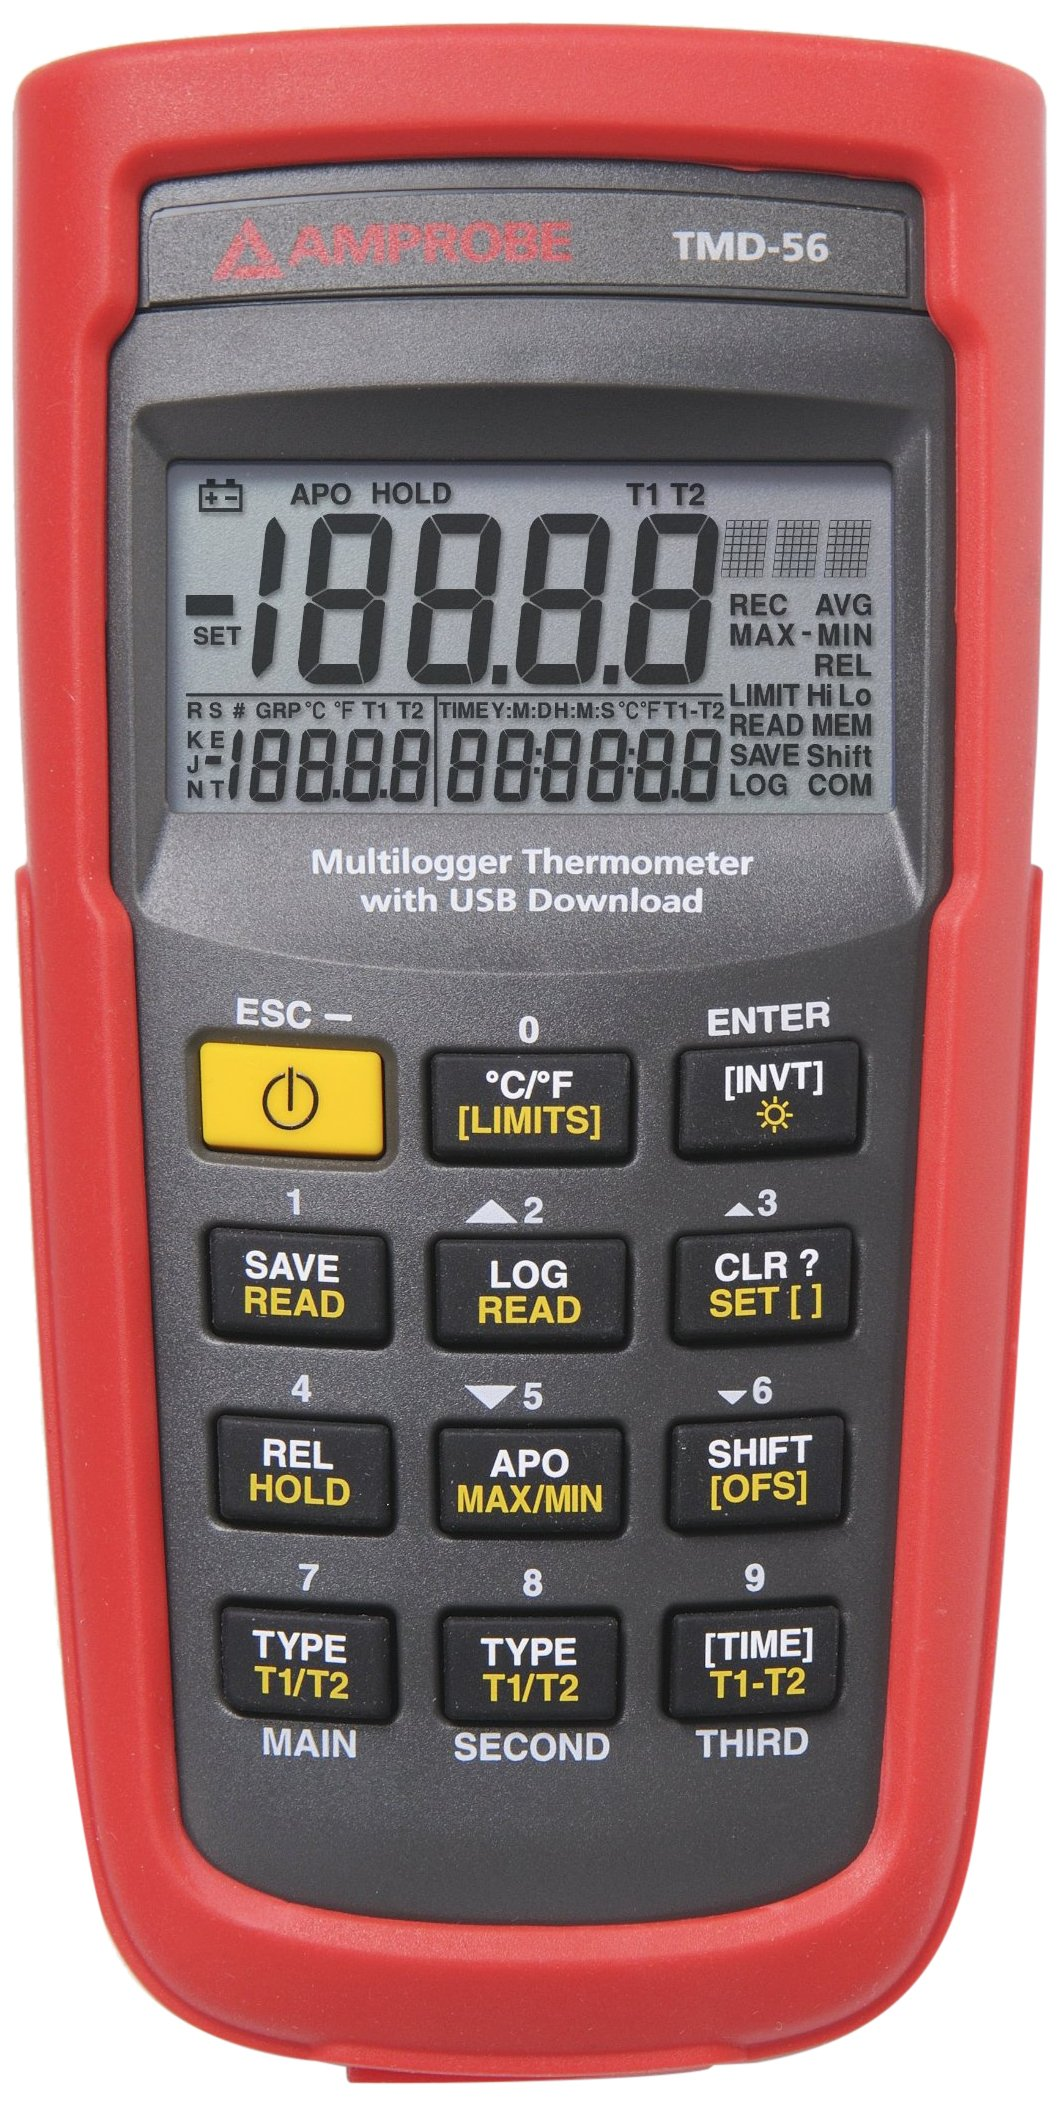 Amprobe TMD-56 Multi-Logging Digital Thermometer, 0.05% Basic Accuracy